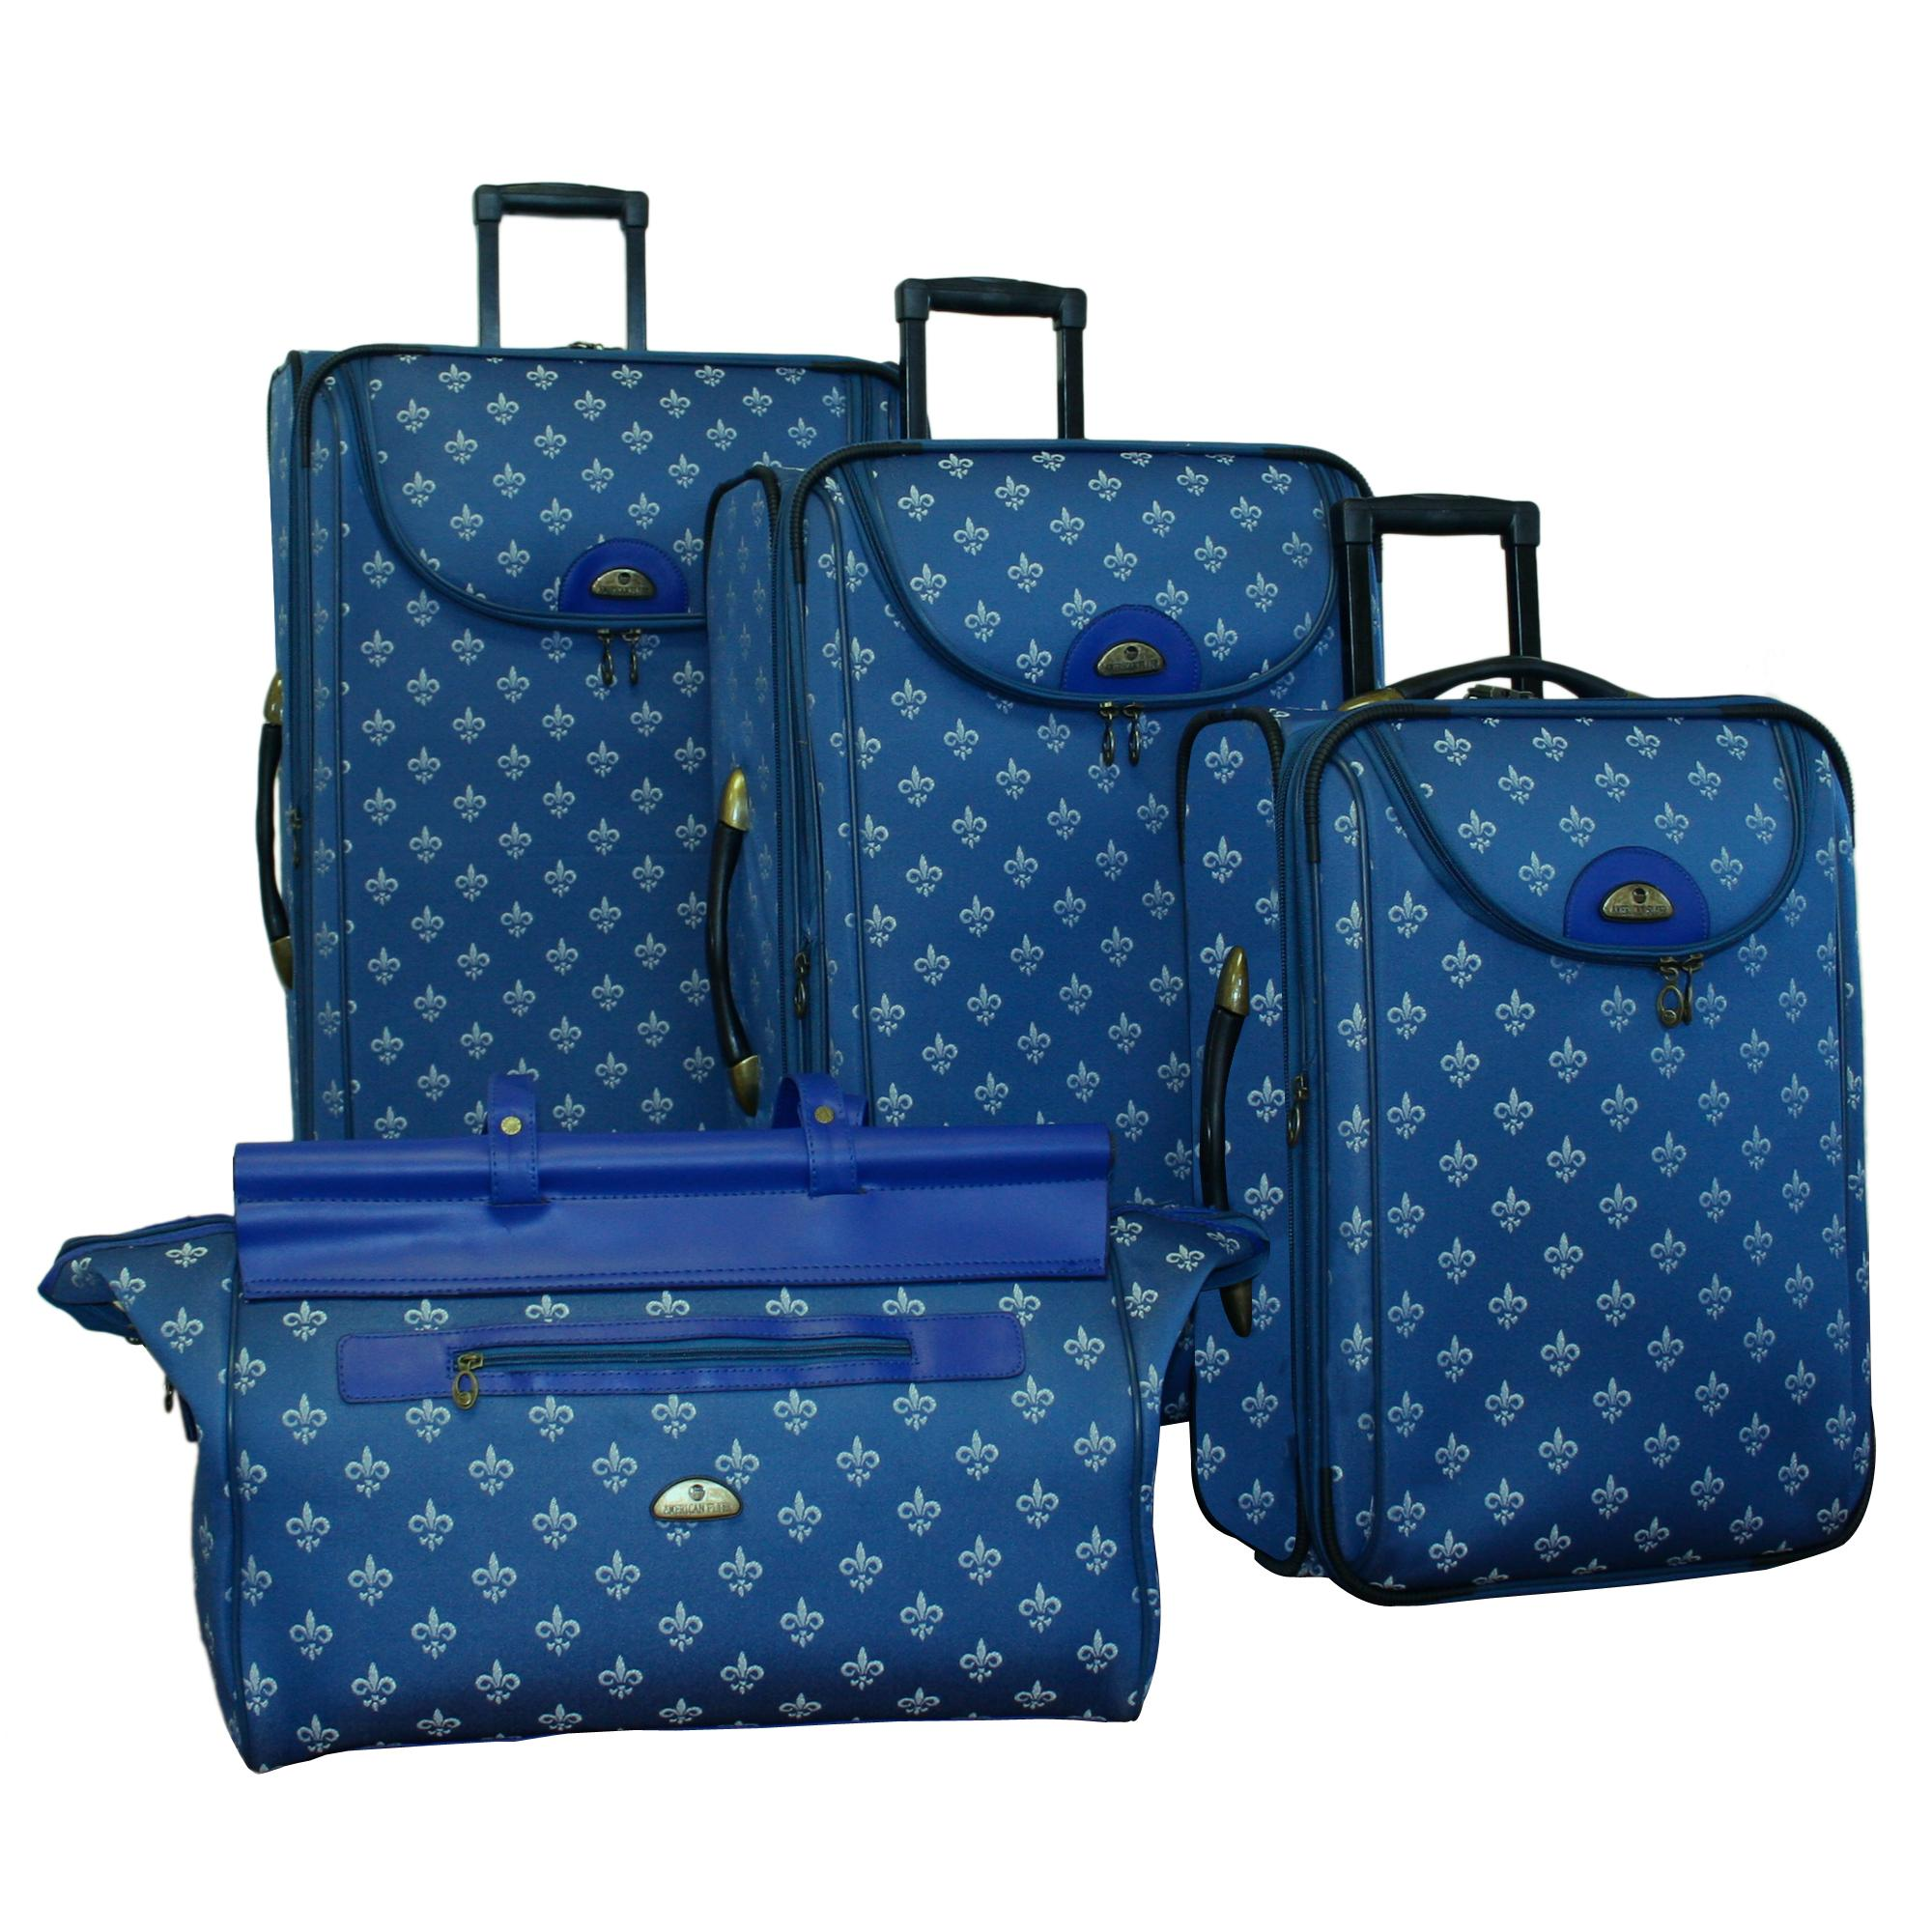 American Flyer Lyon Blue 4-piece Luggage Set